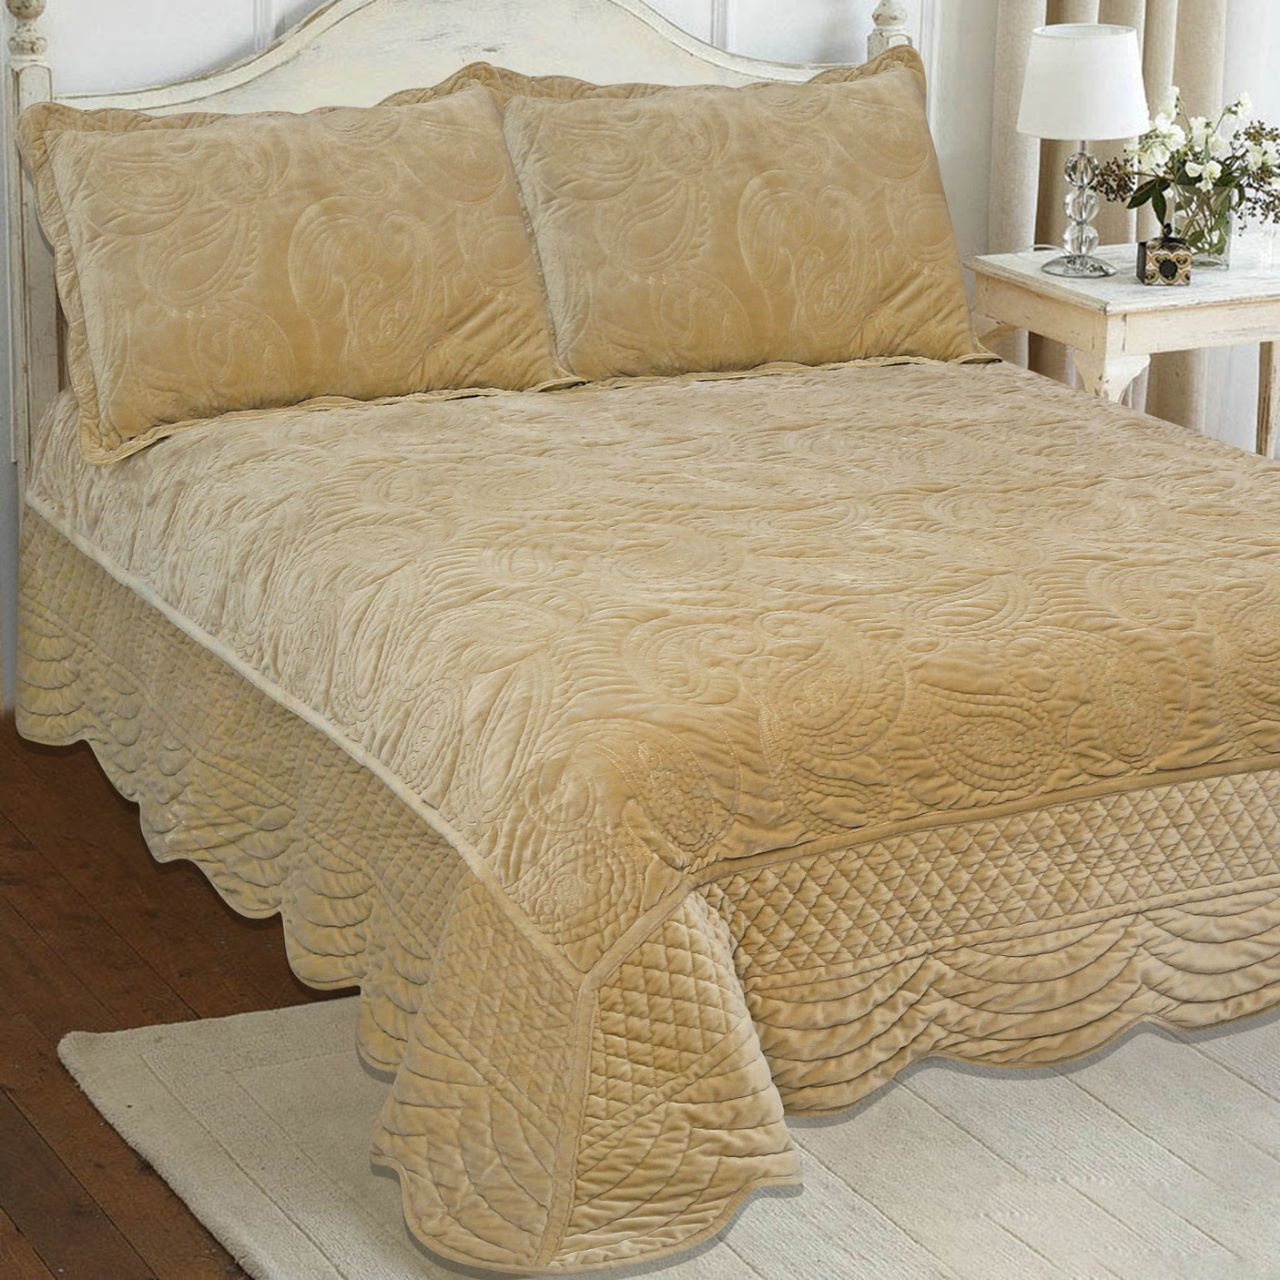 DEEP VELVET FINELY STITCHED LUXURY QUILTED